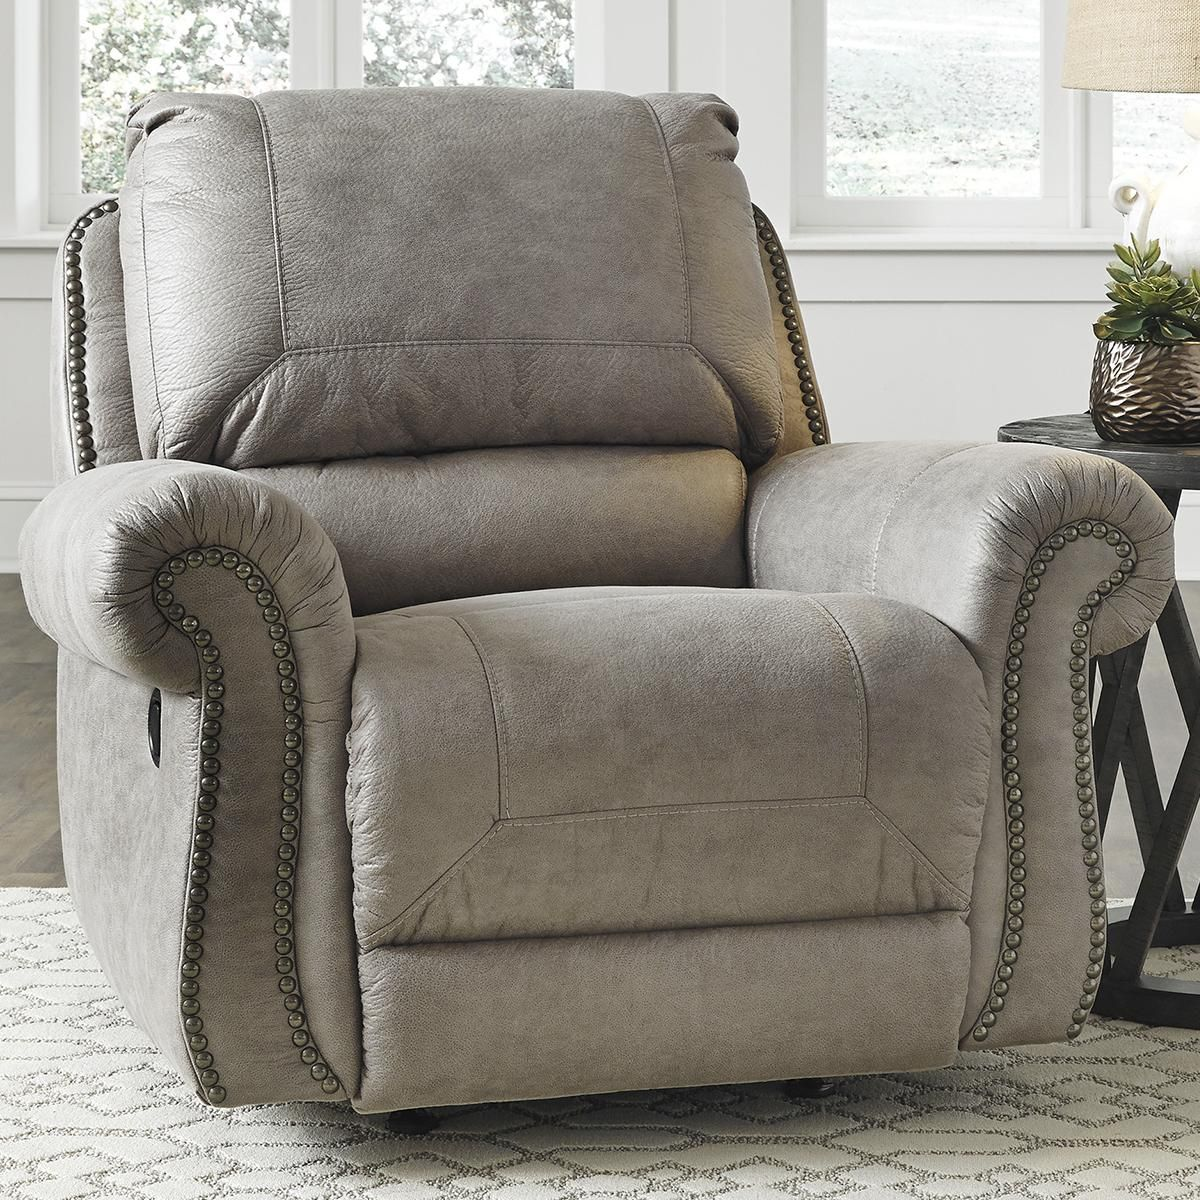 Signature Design by Ashley Olsberg Manual Recliner in Steel